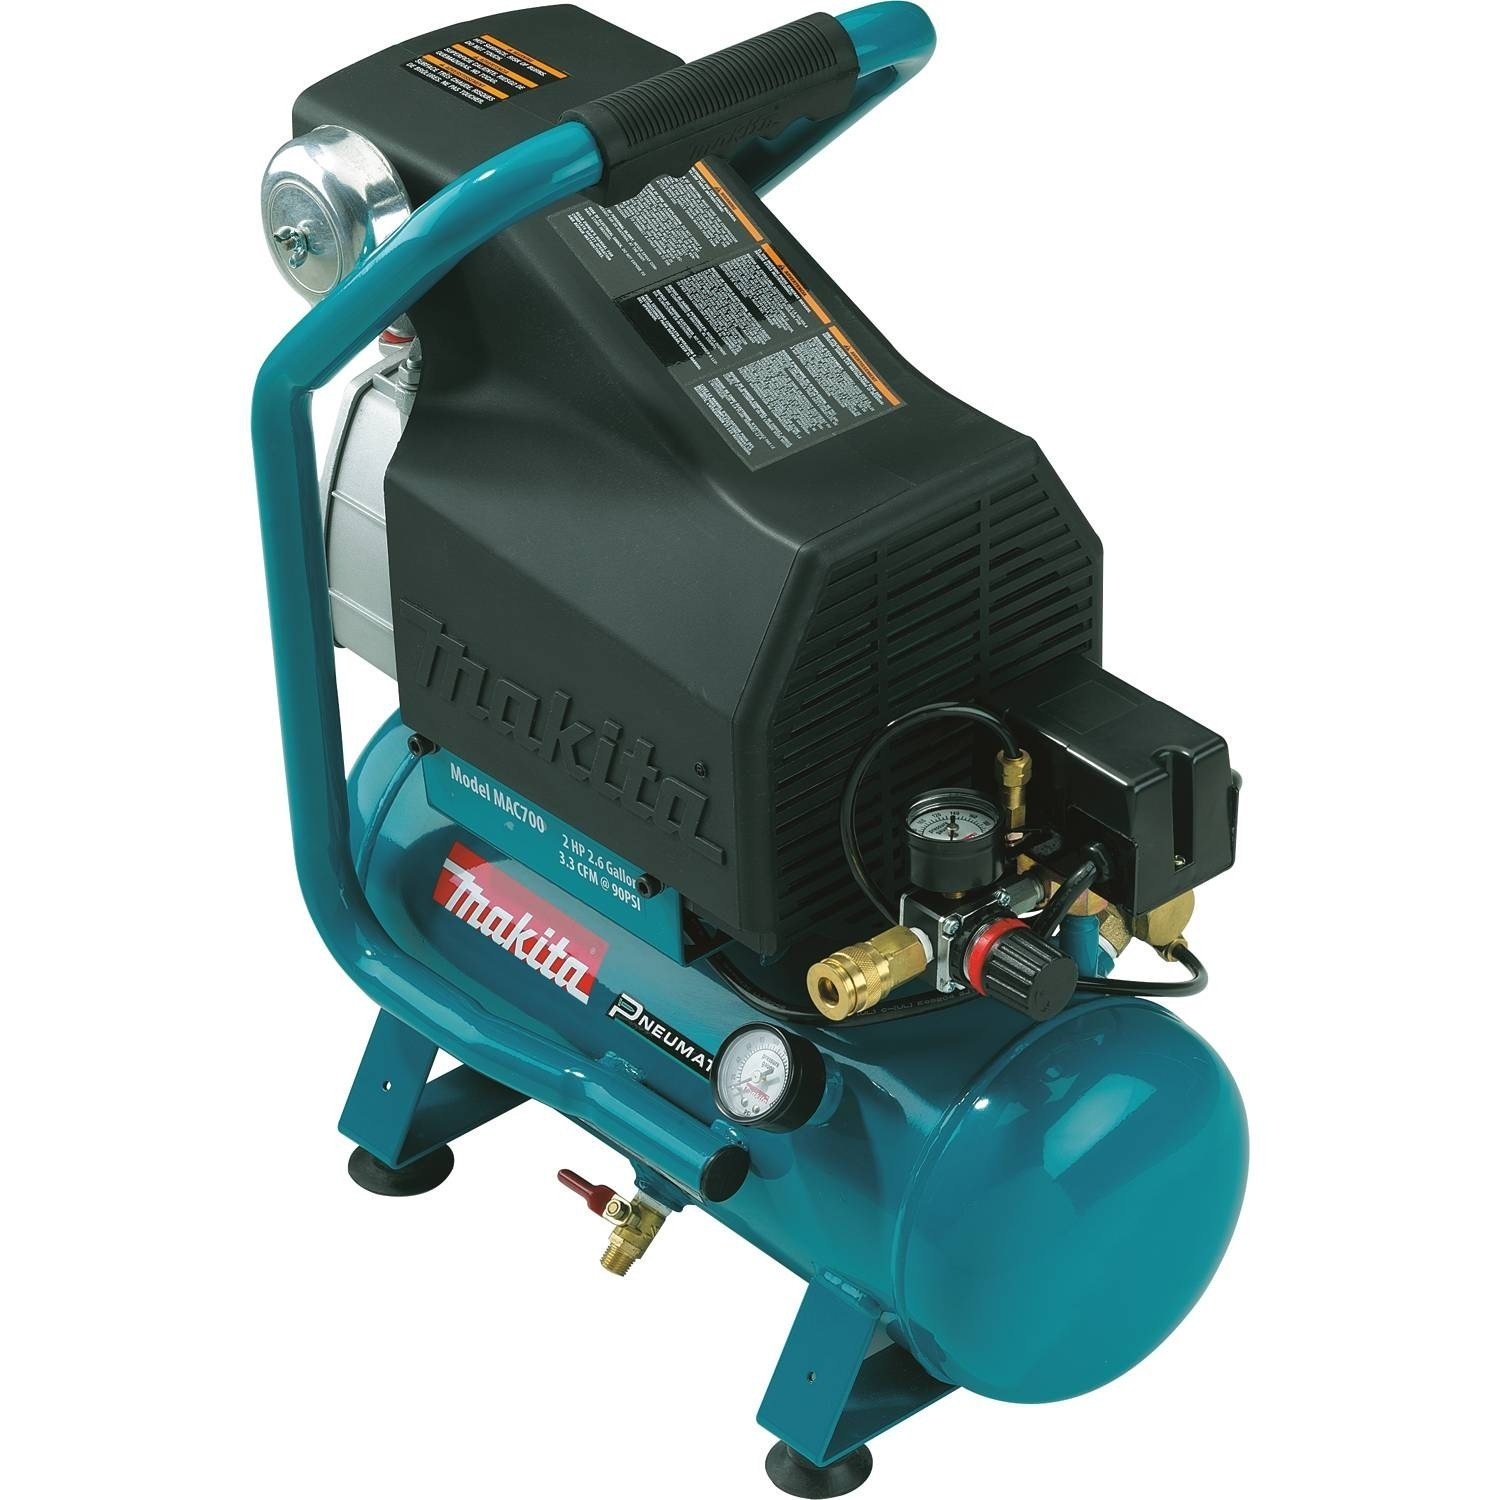 Best oil-lubricated air compressor for home garage